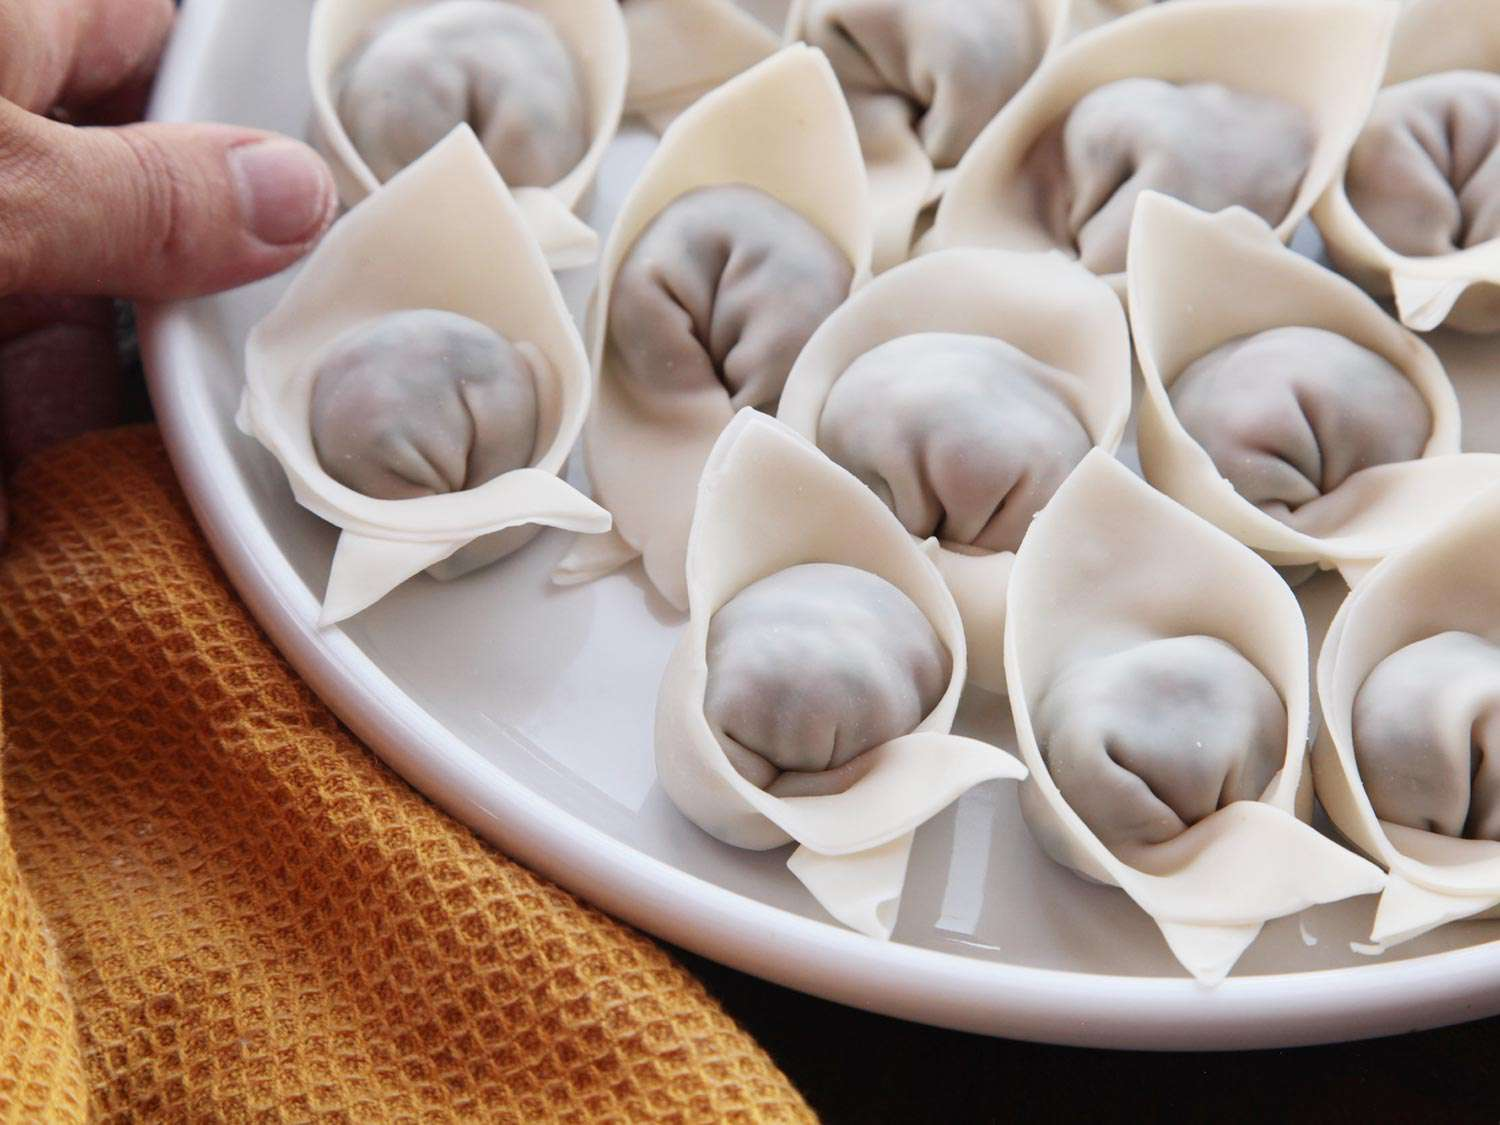 Transferring finished wontons onto a plate